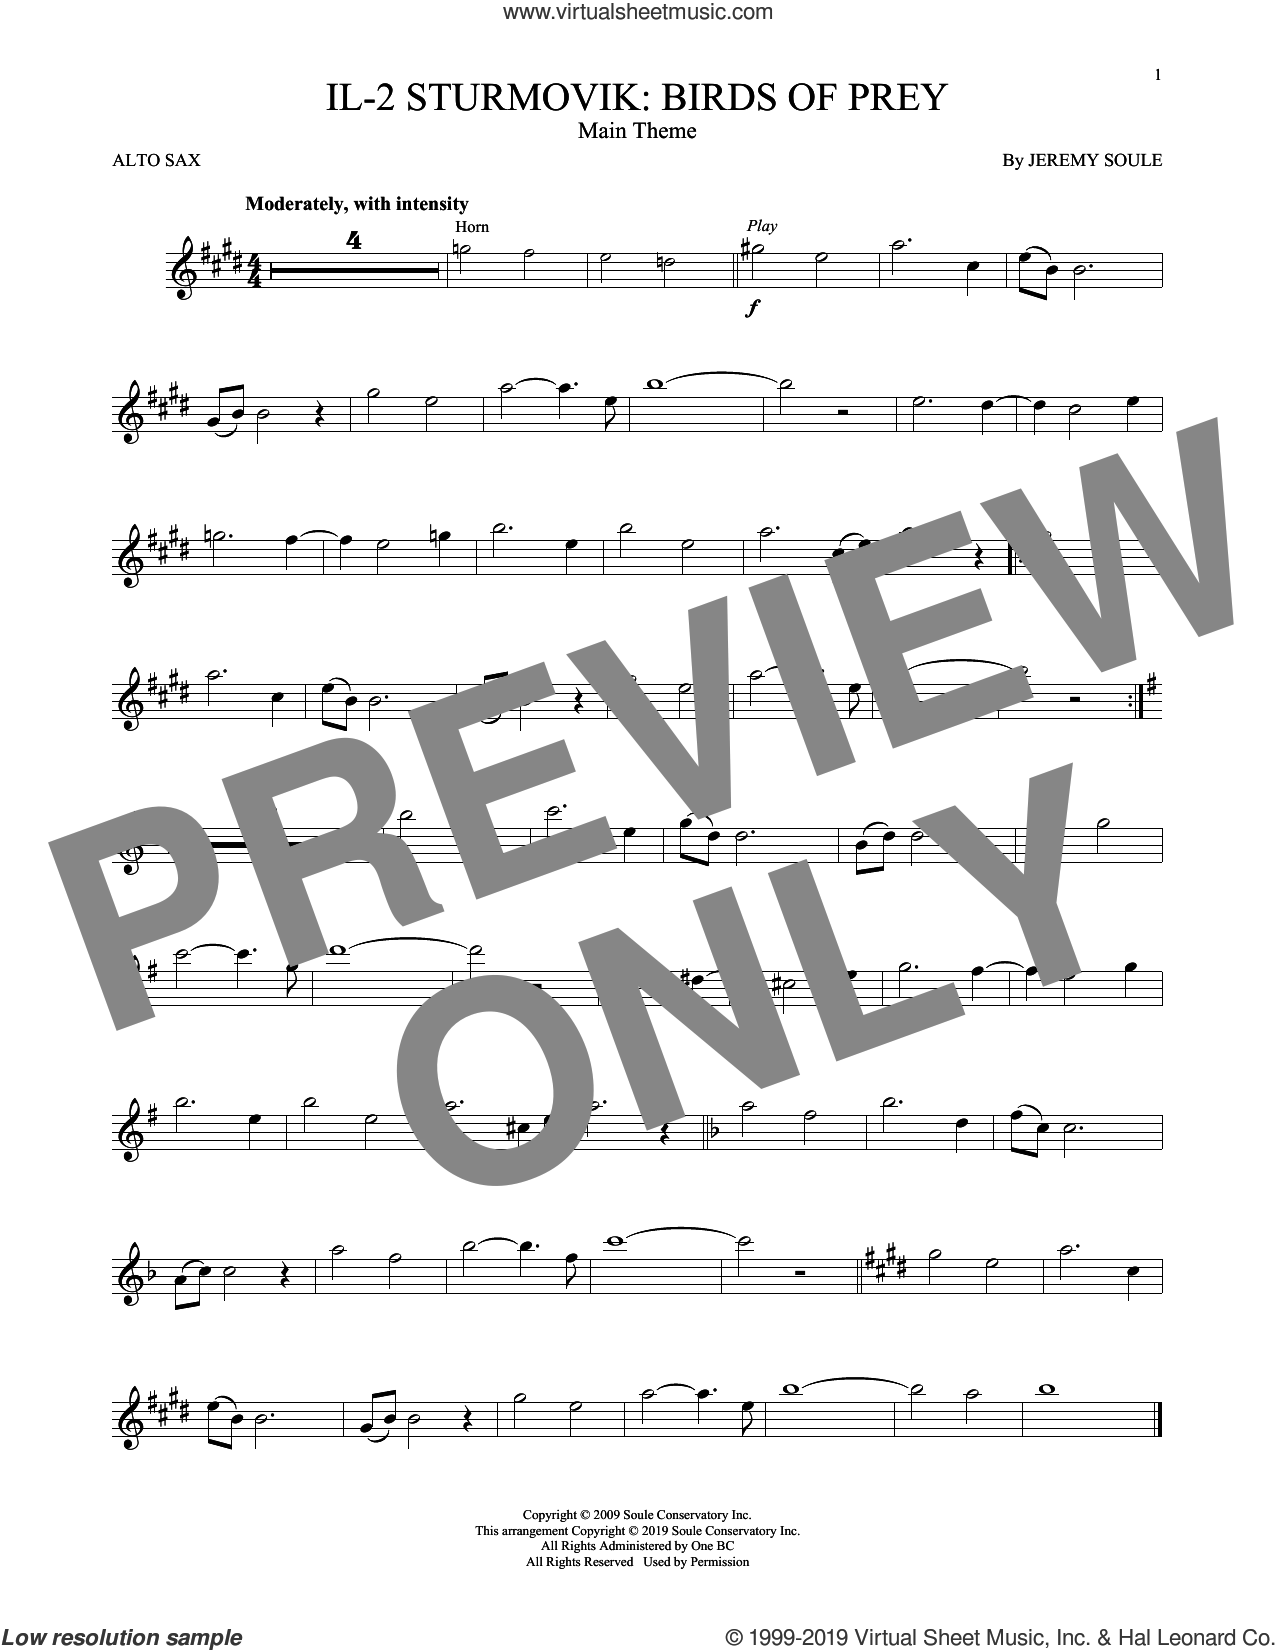 IL-2 Sturmovik: Birds of Prey - Main Theme sheet music for alto saxophone solo by Jeremy Soule, intermediate skill level